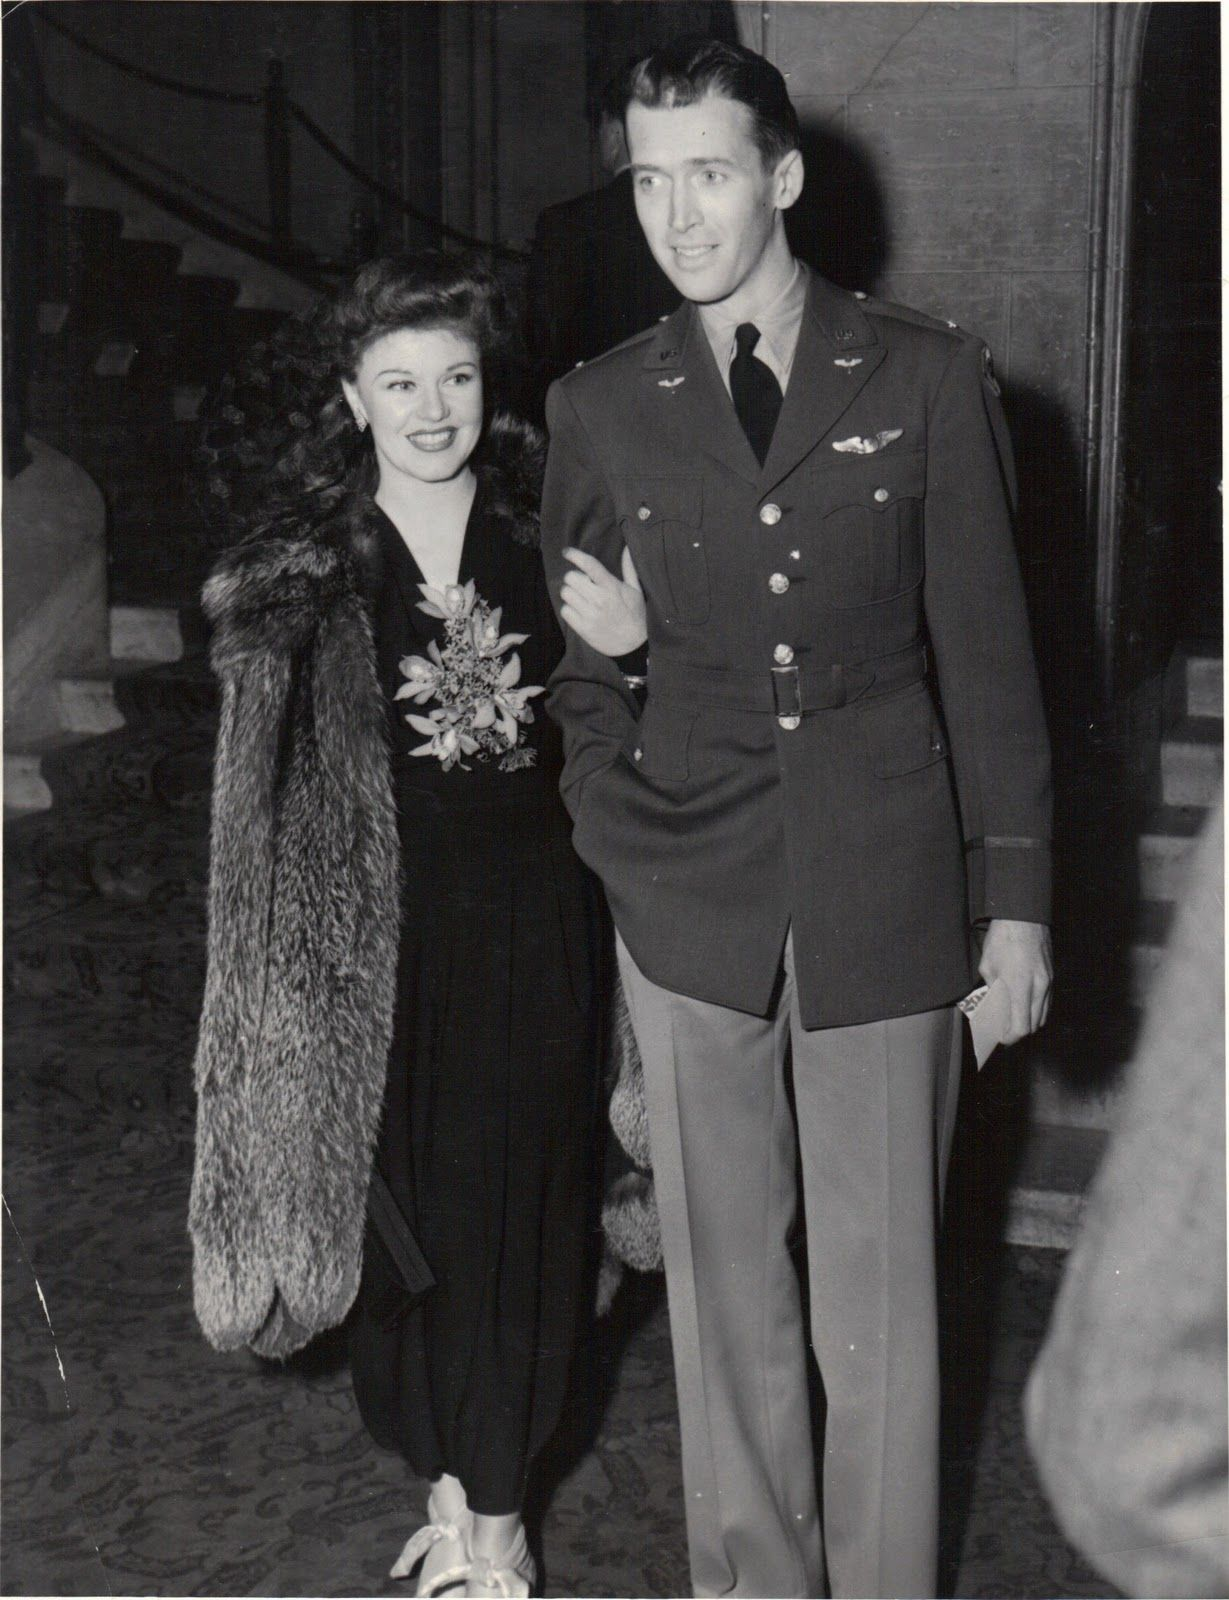 Jimmy Stewart in the Air Force | ... by the handsome james stewart to the oscars at the biltmore bowl in